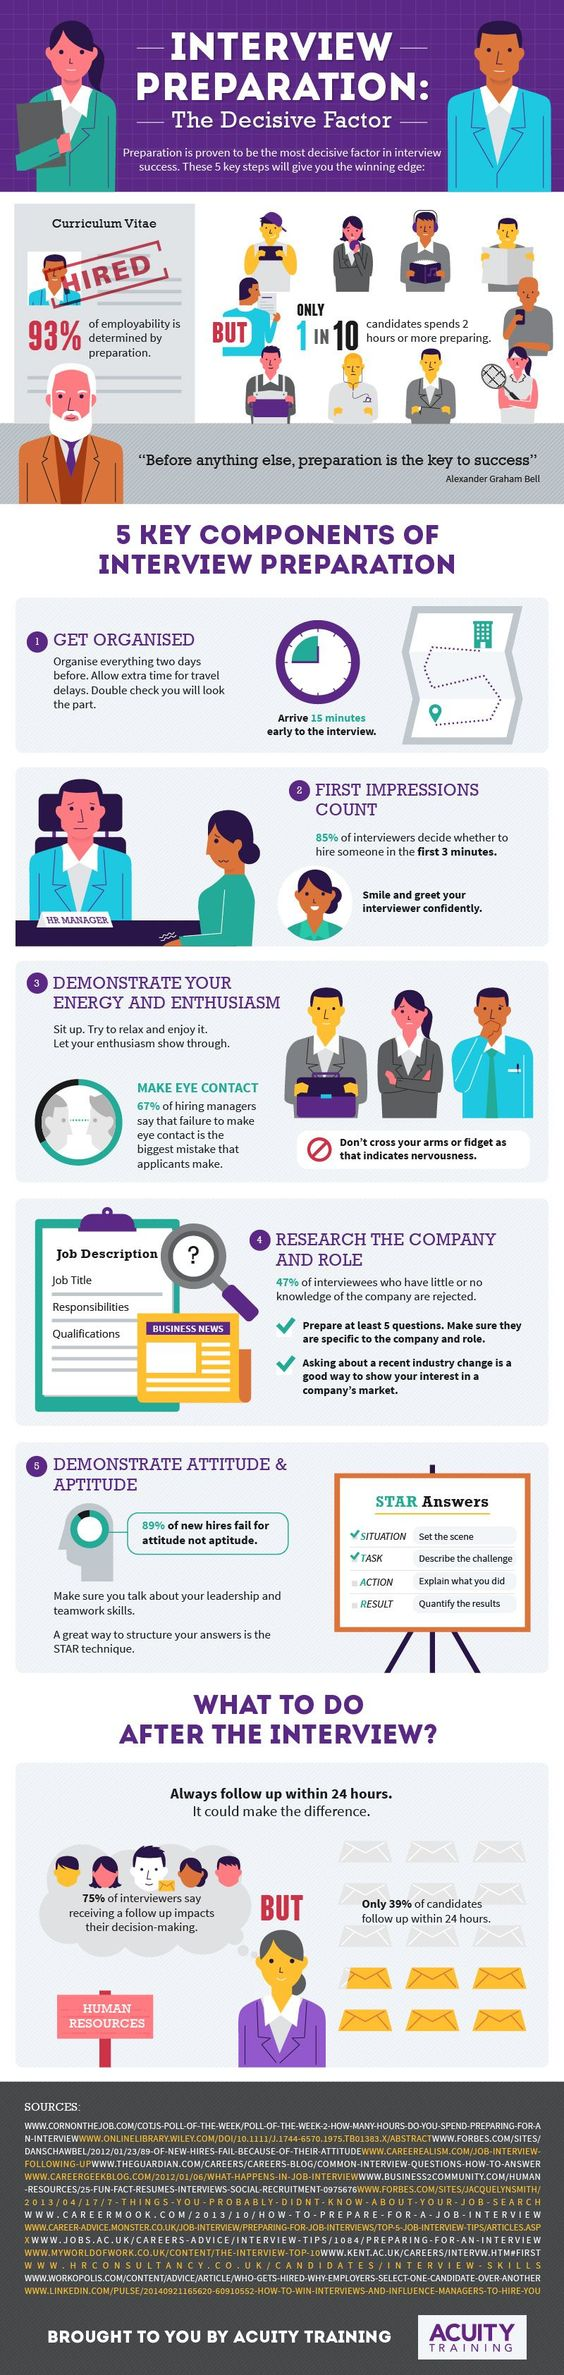 how to help kids understand what it means to have a job interview preparation infographic